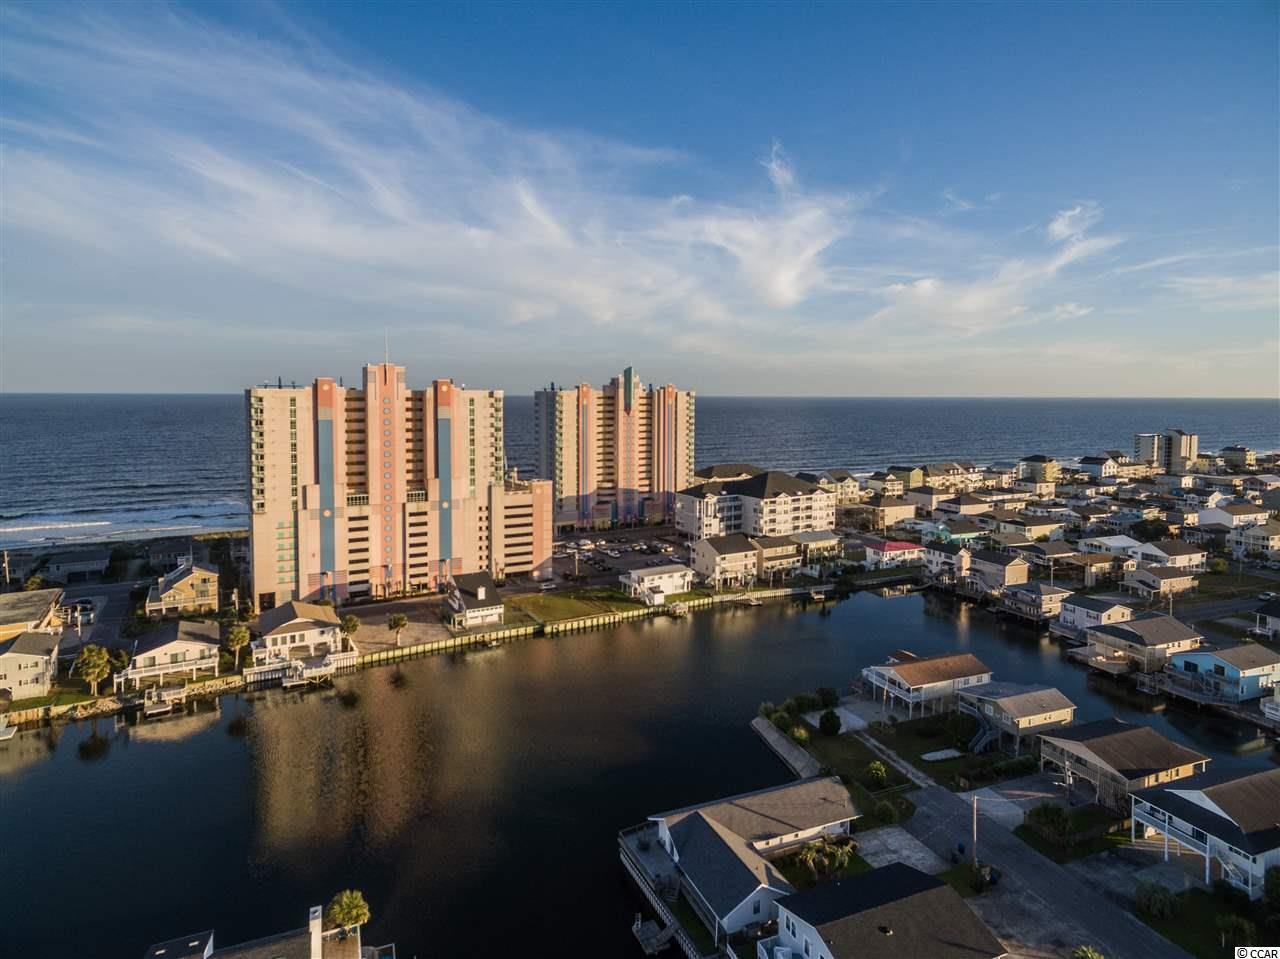 Breathtaking views from this 2BR-2 BA oceanfront unit. This condo is located in the sought after part of the building and in pristine condition. A/C unit is less than 1 year old.  All utilities, insurance, etc. are included in HOA fee.  One of the newest oceanfront complexes in North Myrtle Beach, The Prince Resort overlooks the Cherry Grove Pier and is equipped with several pools, hot tubs, lazy river, fitness center, oceanfront dining and more. Priced to sell! Call your agent and schedule a showing today!